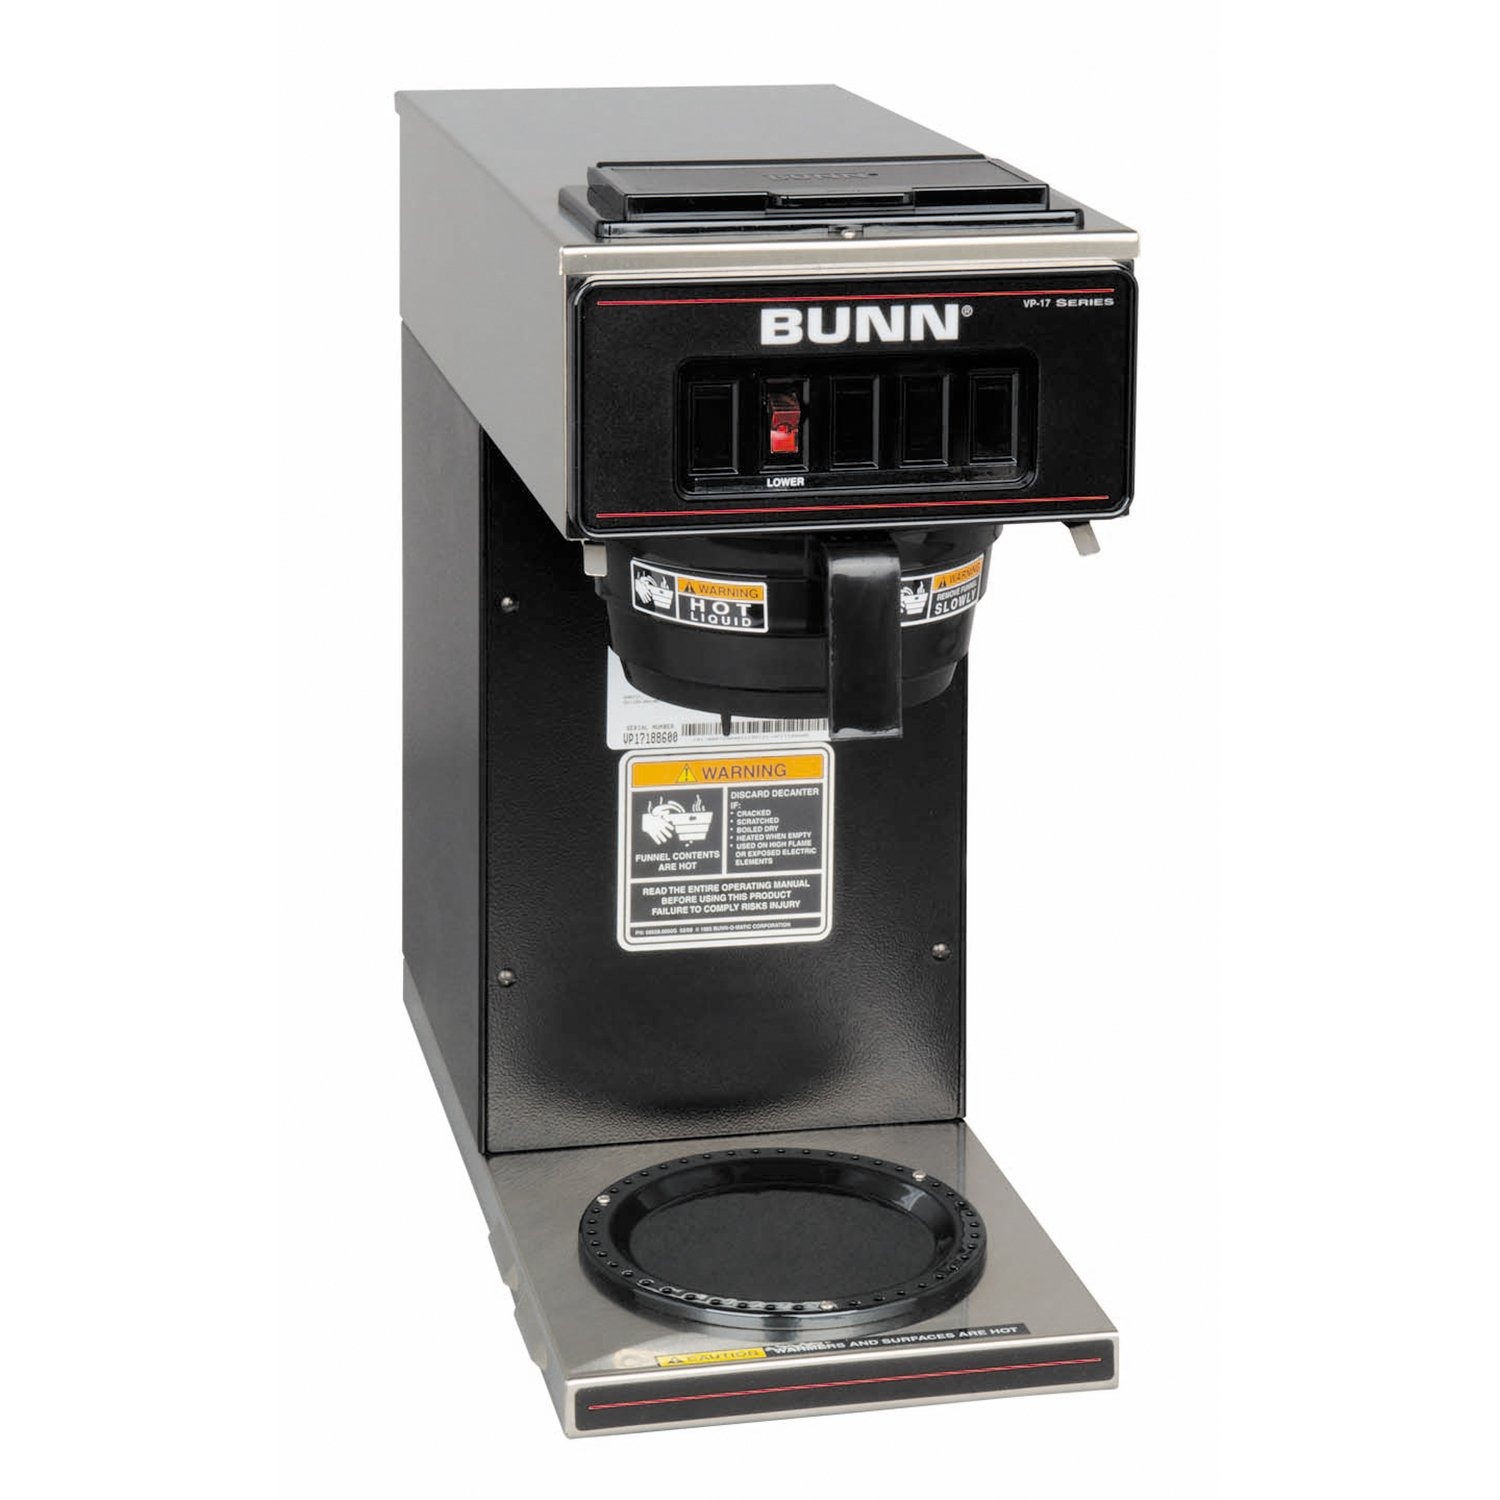 BUNN 13300.0011 VP17-1BLK Pourover Coffee Brewer with One Warmer, Black